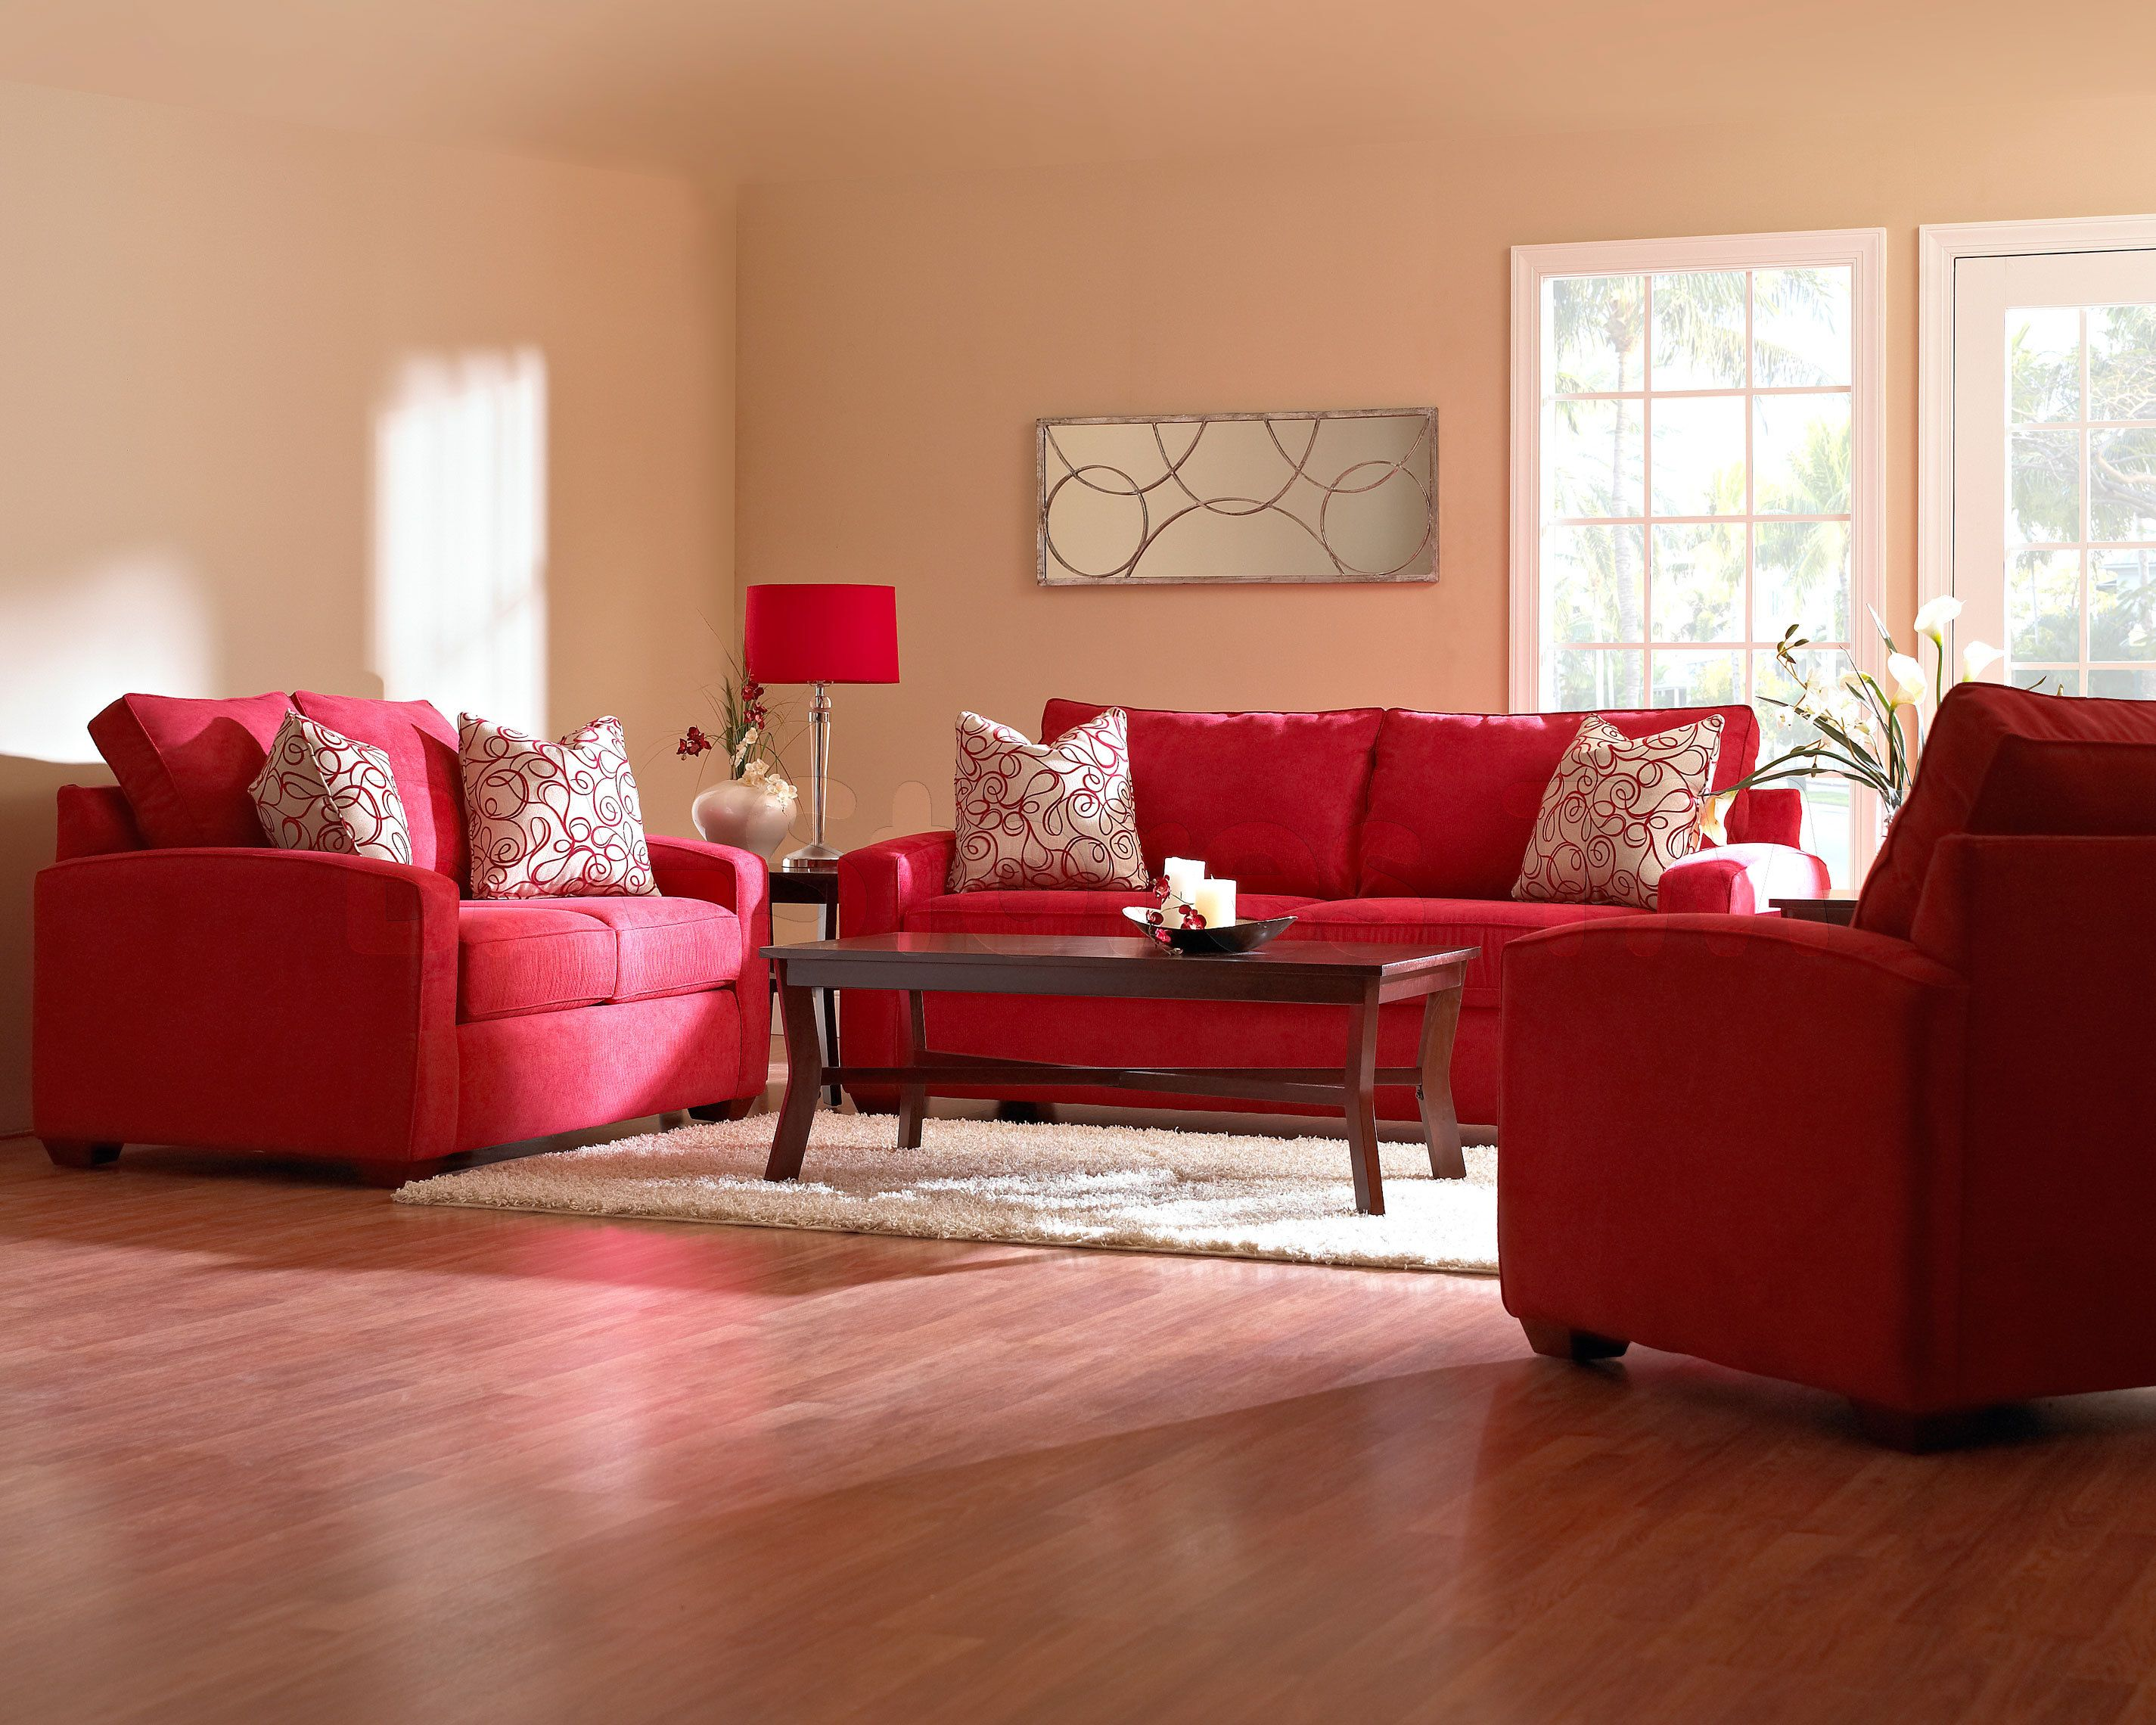 Red Living Room Furniture Decorating Ideas You Can Do Almost Anything They Want Nowadays With Design Yet It